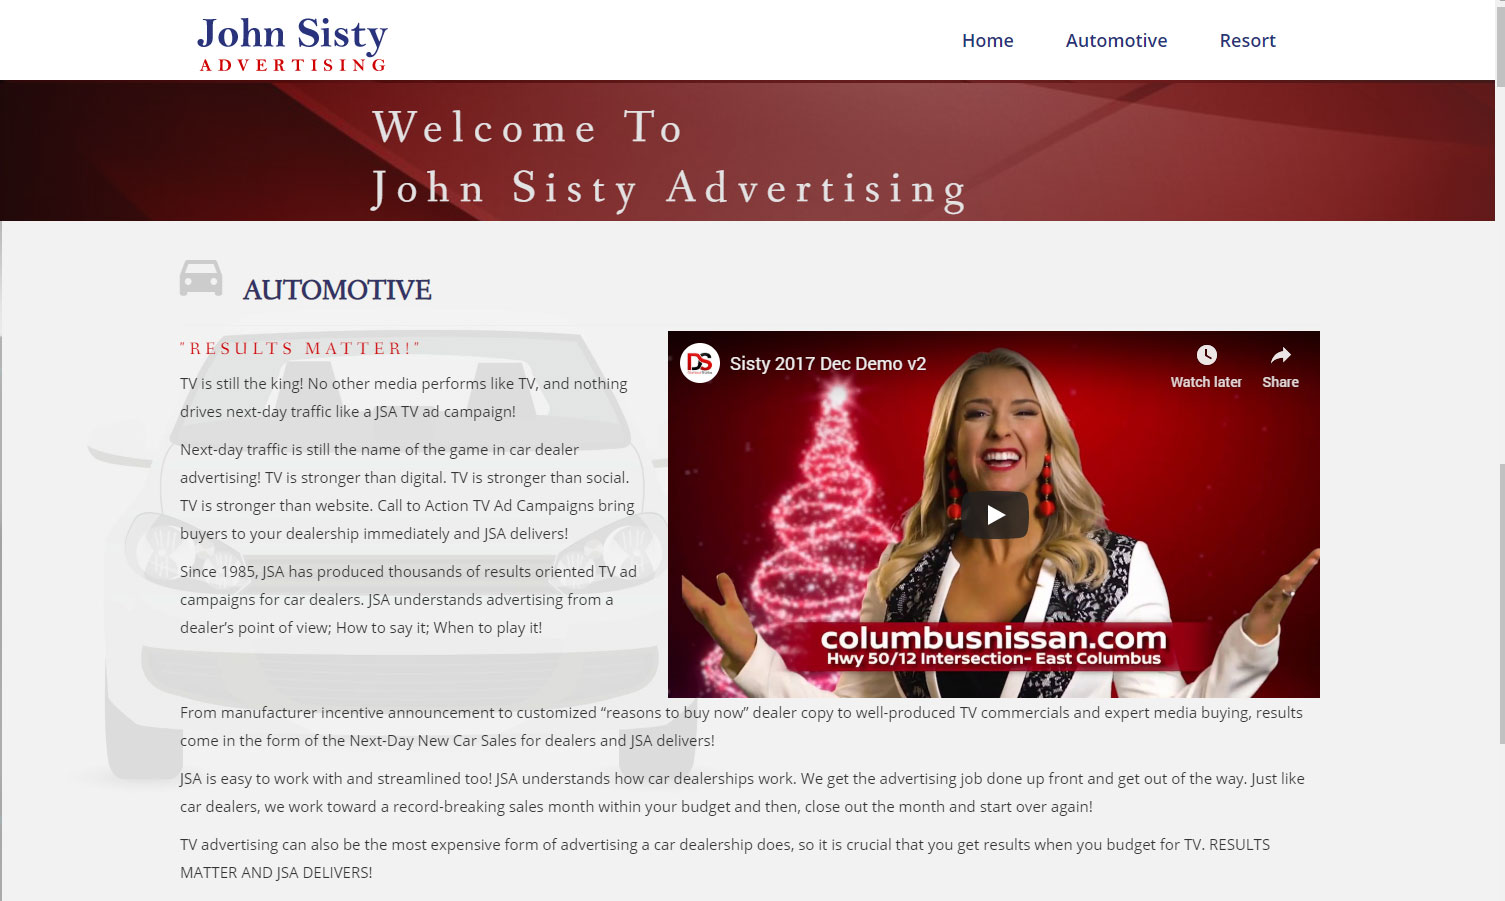 Homepage of John Sisty Advertising